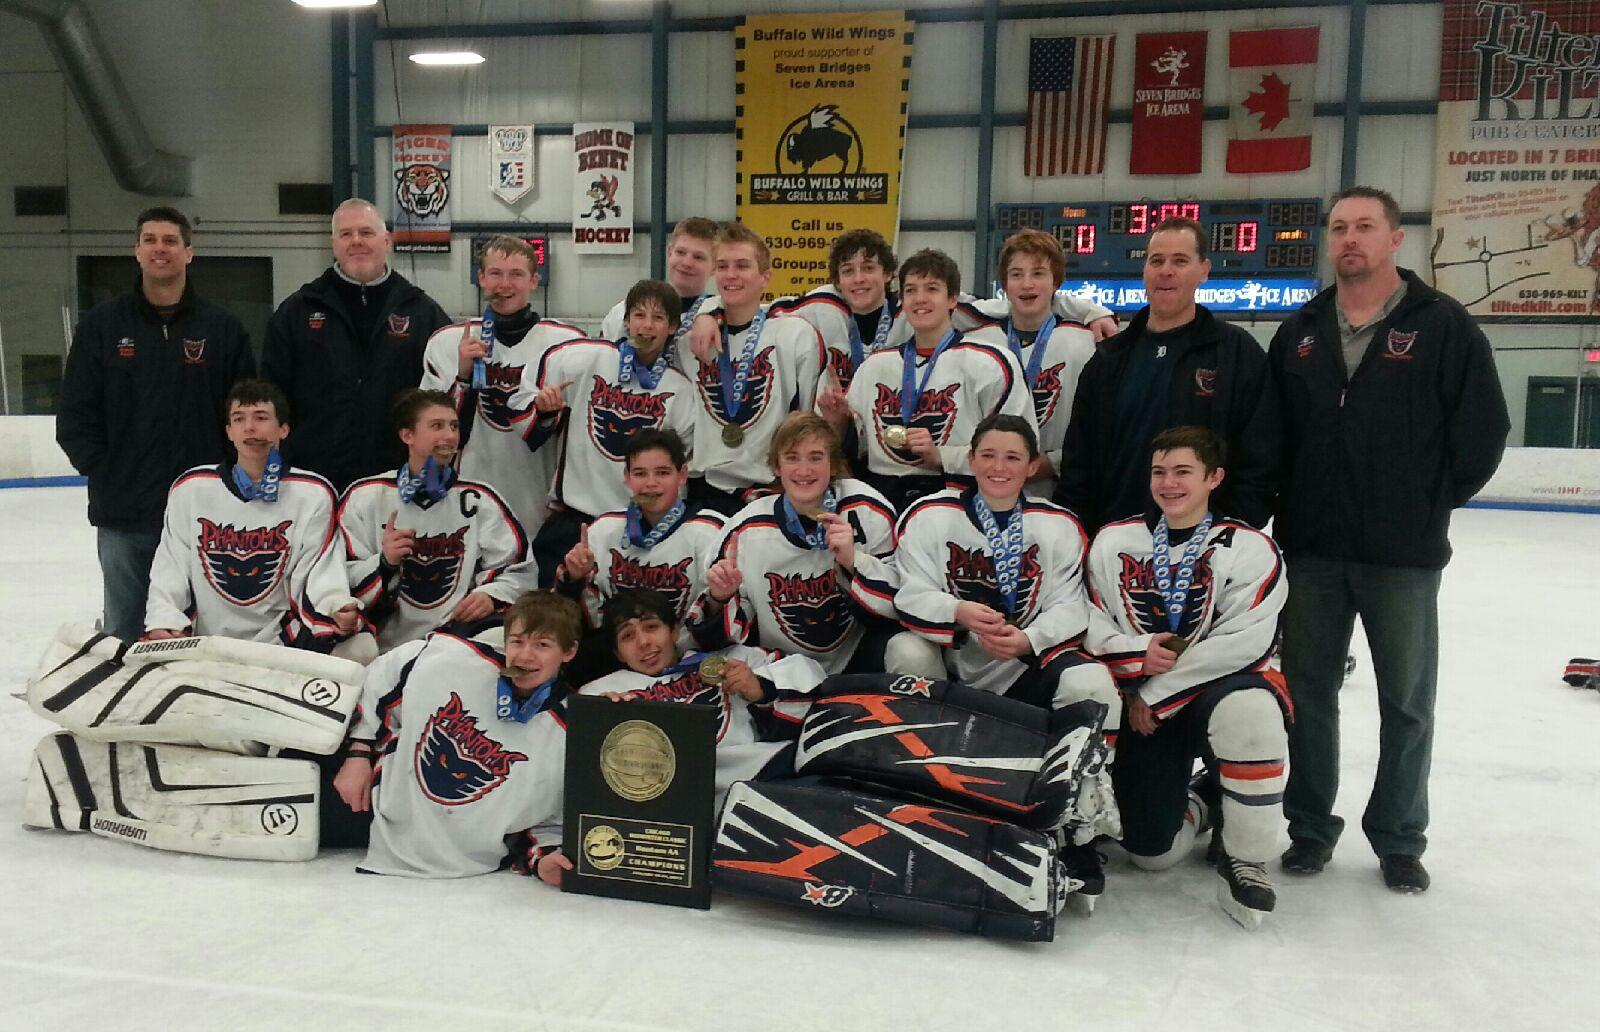 '98 Flint Phantoms Win Chicago